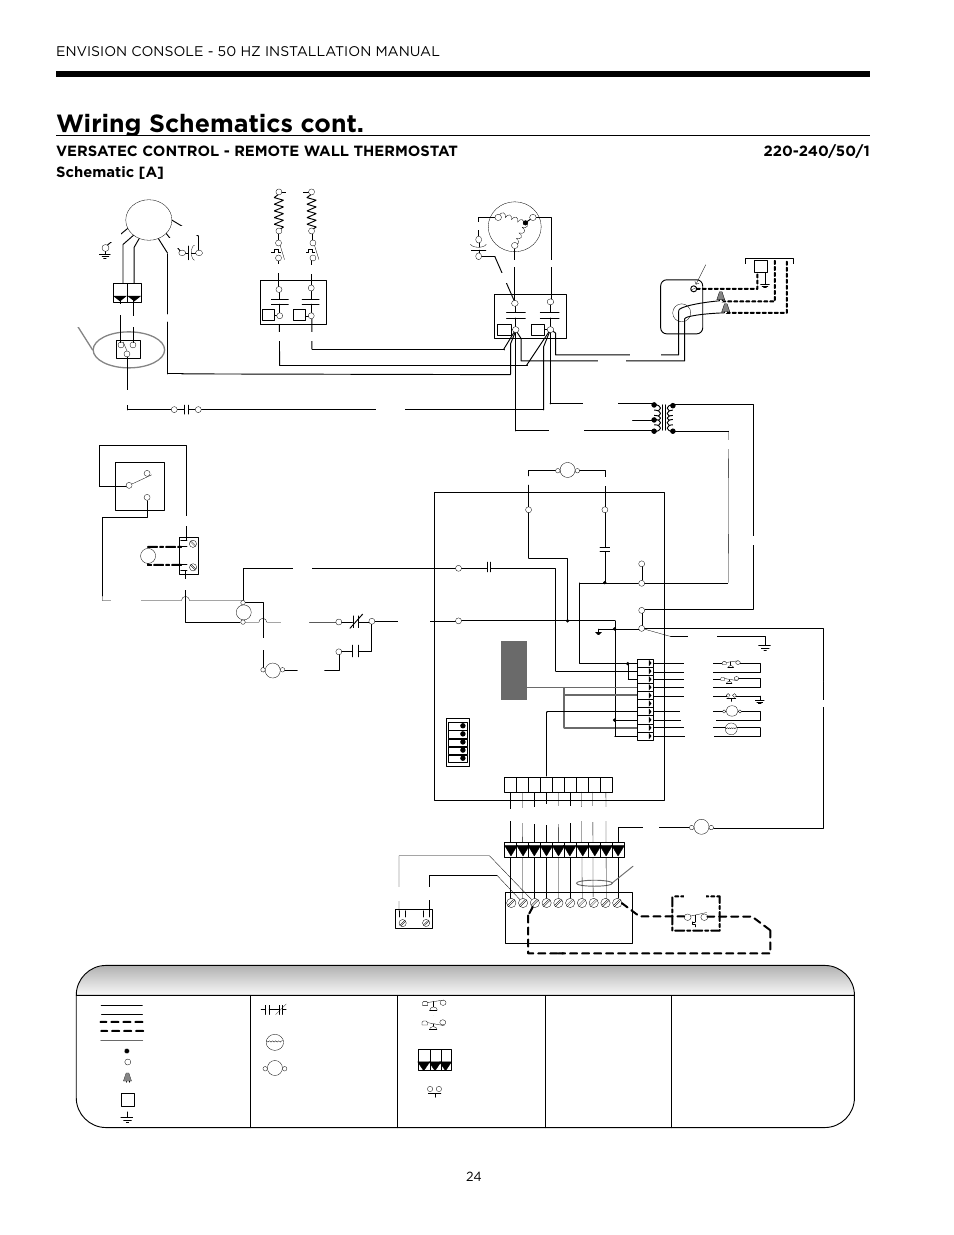 Motor Wiring Diagram On Thermostat Wiring Diagram For Waterfurnace